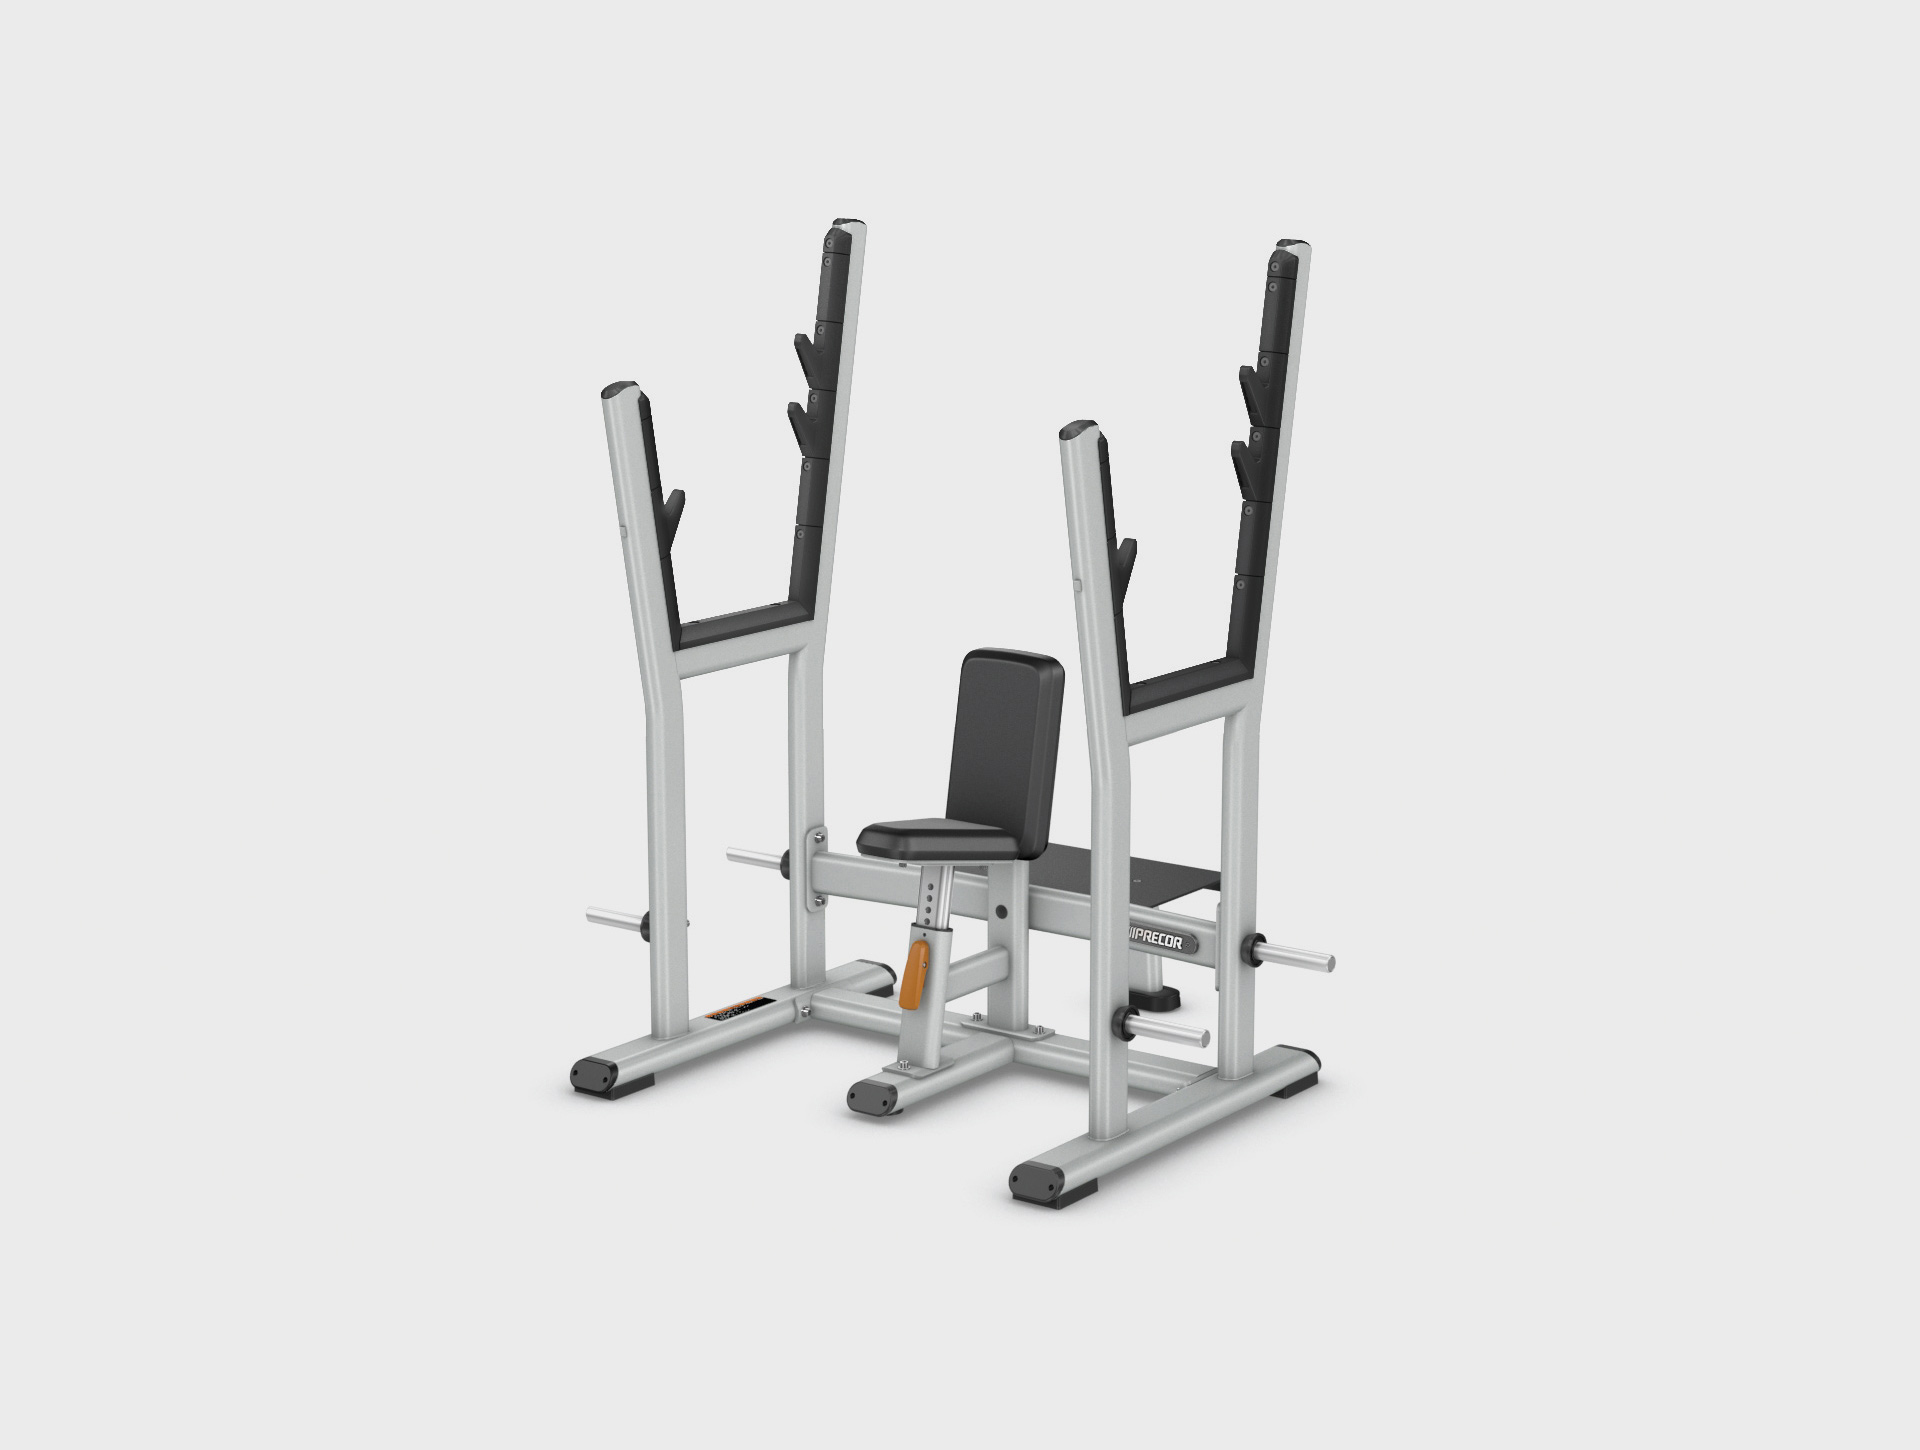 Precor Discovery Series Olympic Shoulder Press Bench